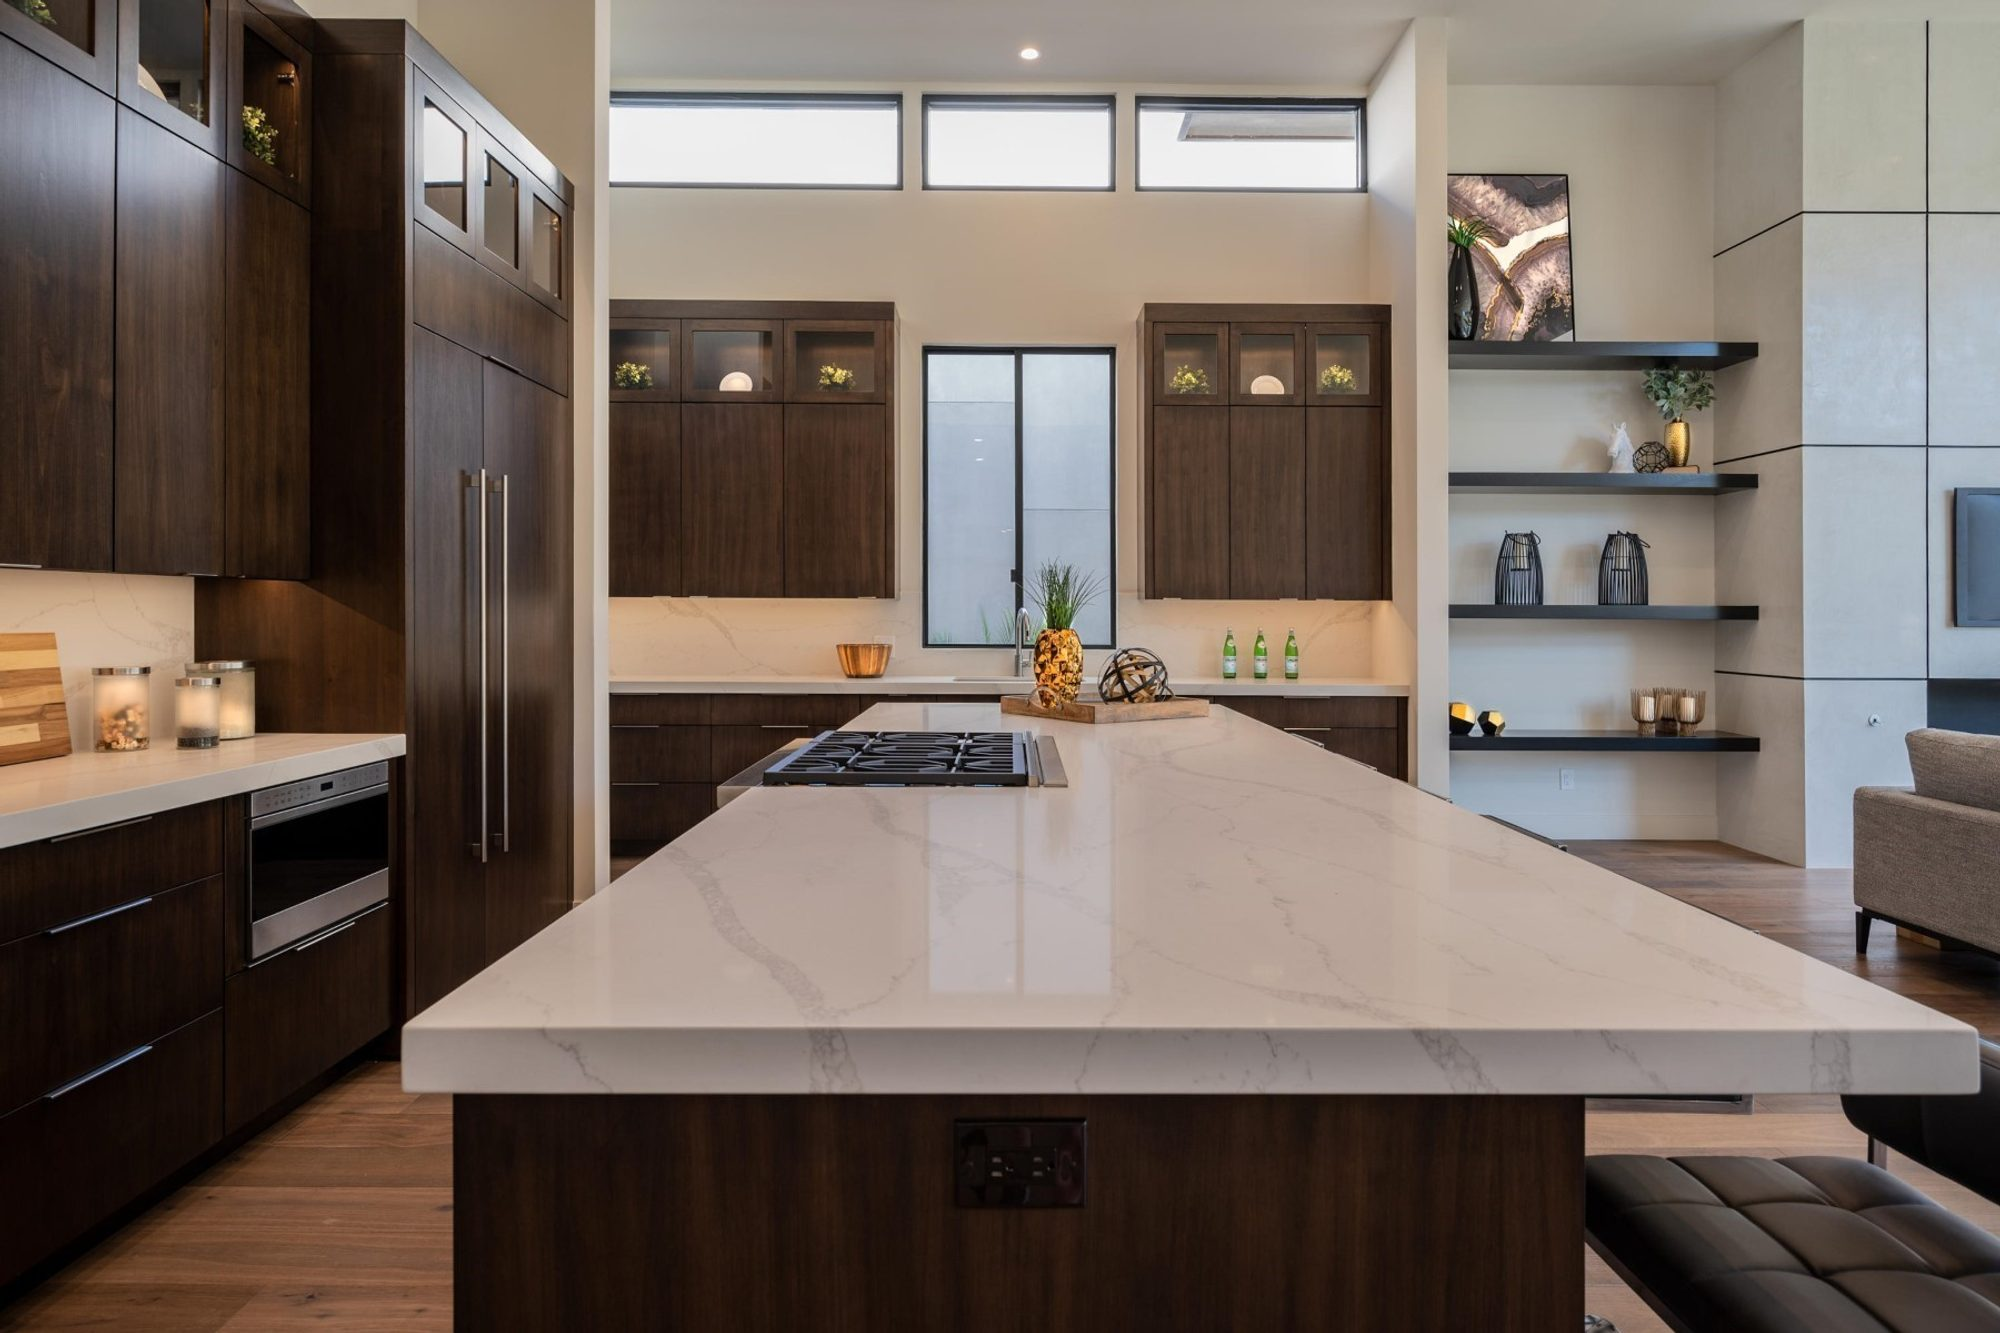 Beautiful modern kitchen with extra high 12' ceilings. Modern wood cabinets with quartz marble countertops.